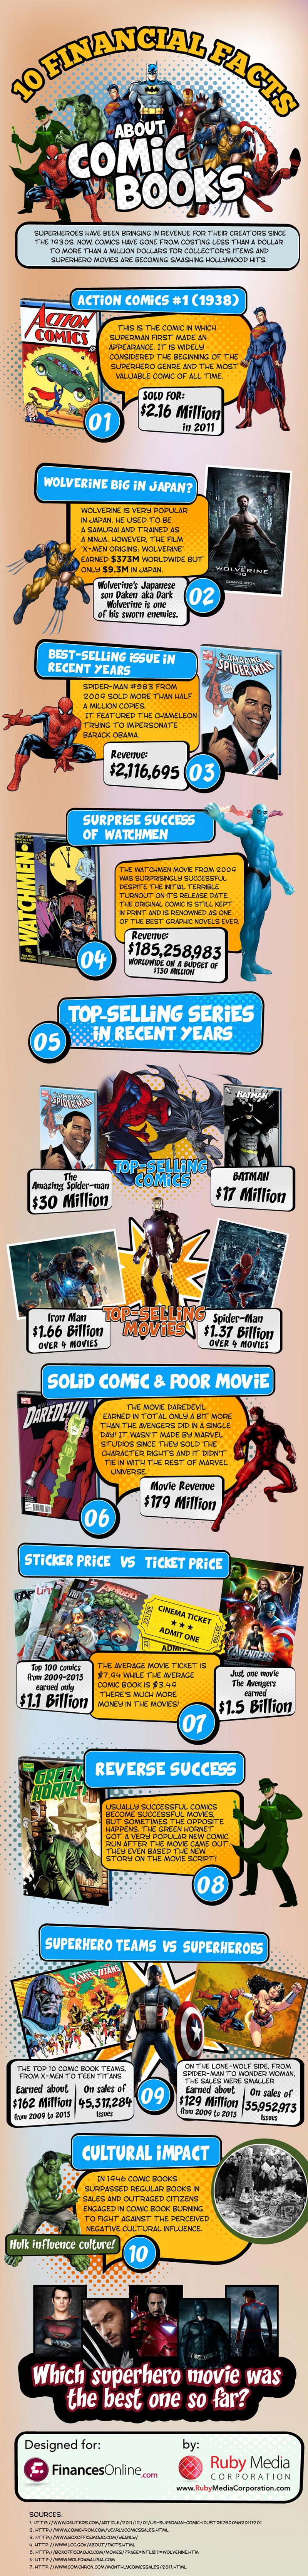 Facts About Comic Books